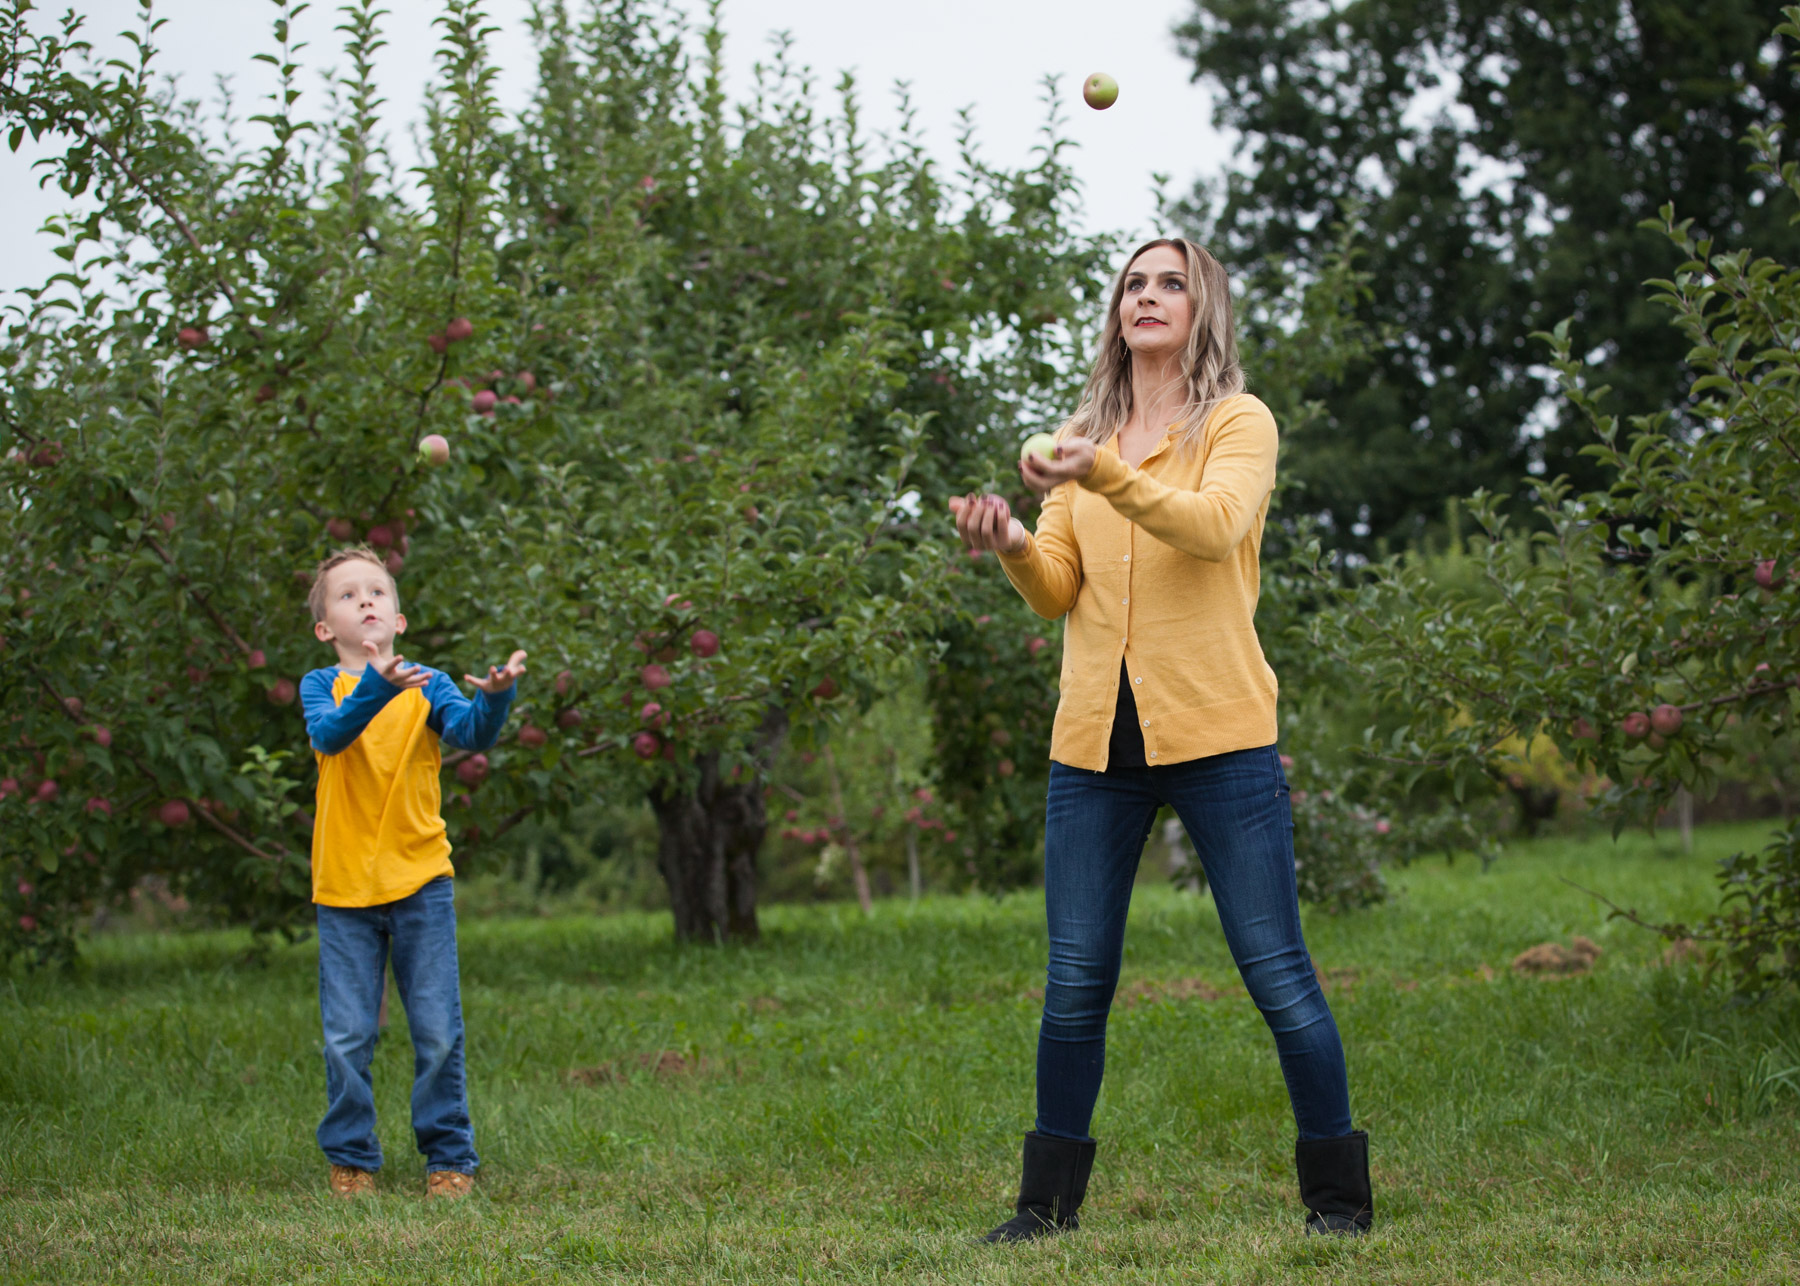 Mother and son juggle apples in an apple orchard in Easthampton, MA.